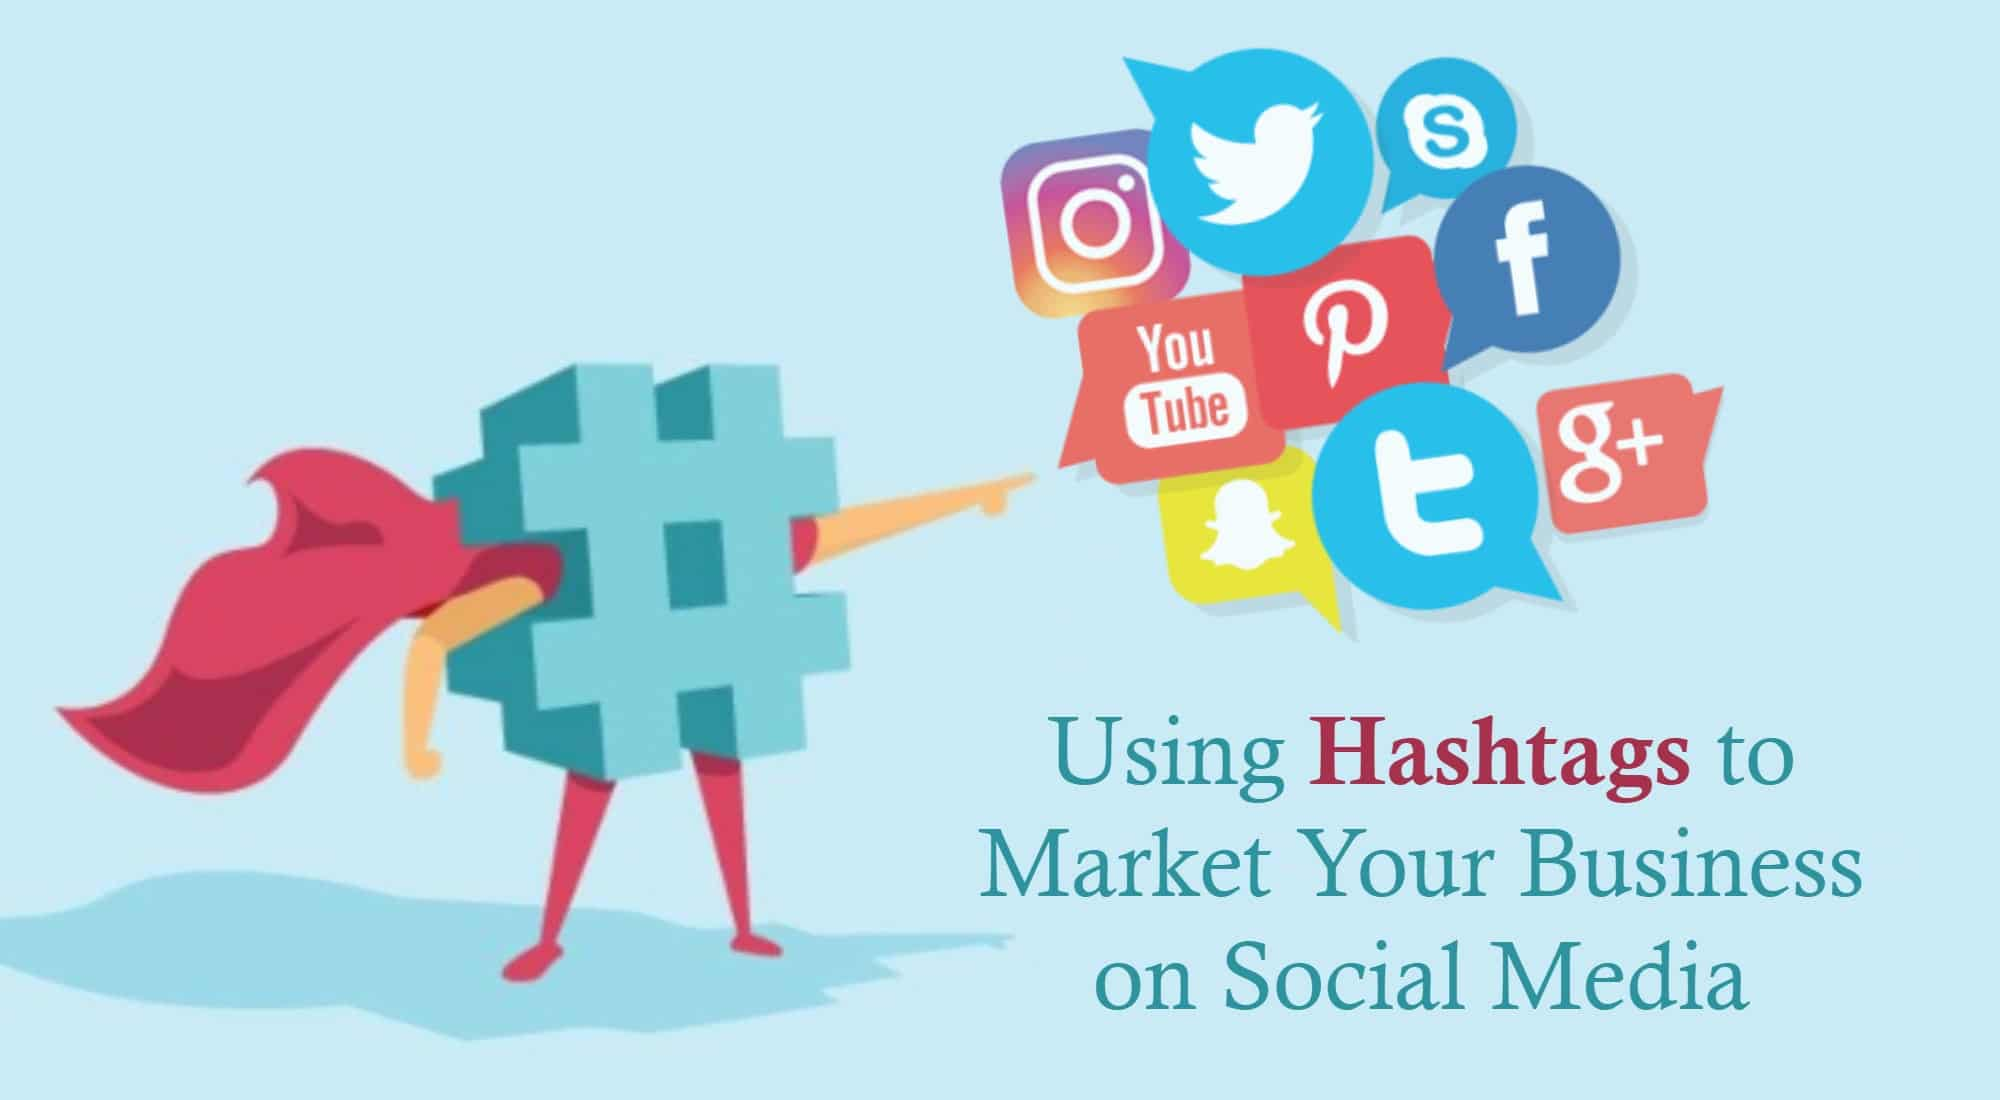 Using Hashtags to Market Your Business on Social Media